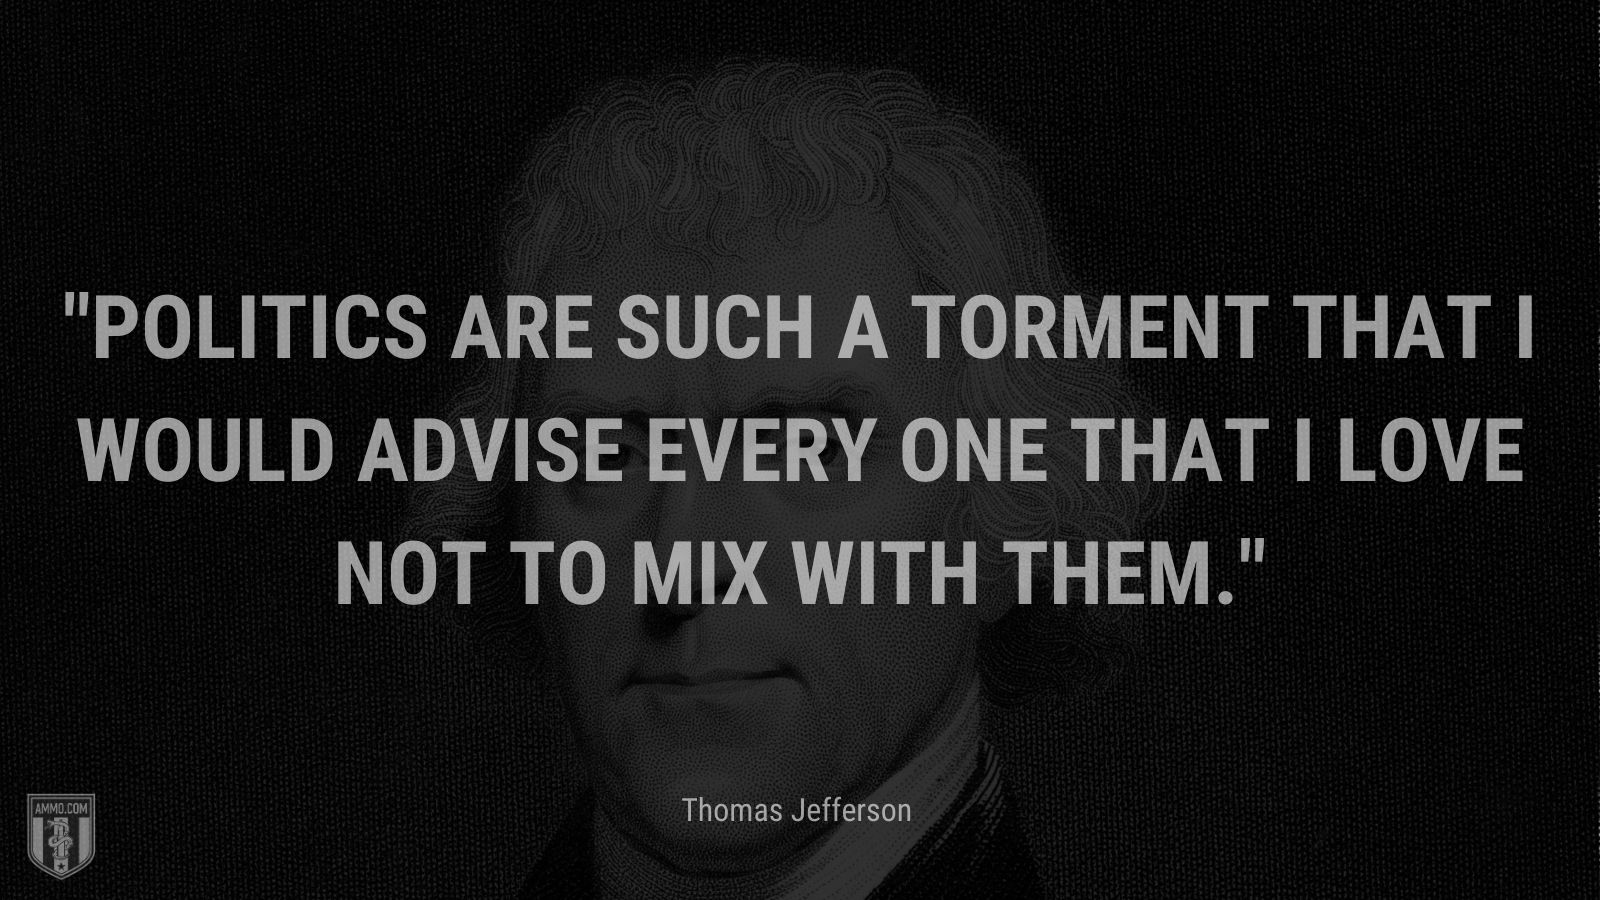 """""""Politics are such a torment that I would advise every one that I love not to mix with them."""" - Thomas Jefferson"""